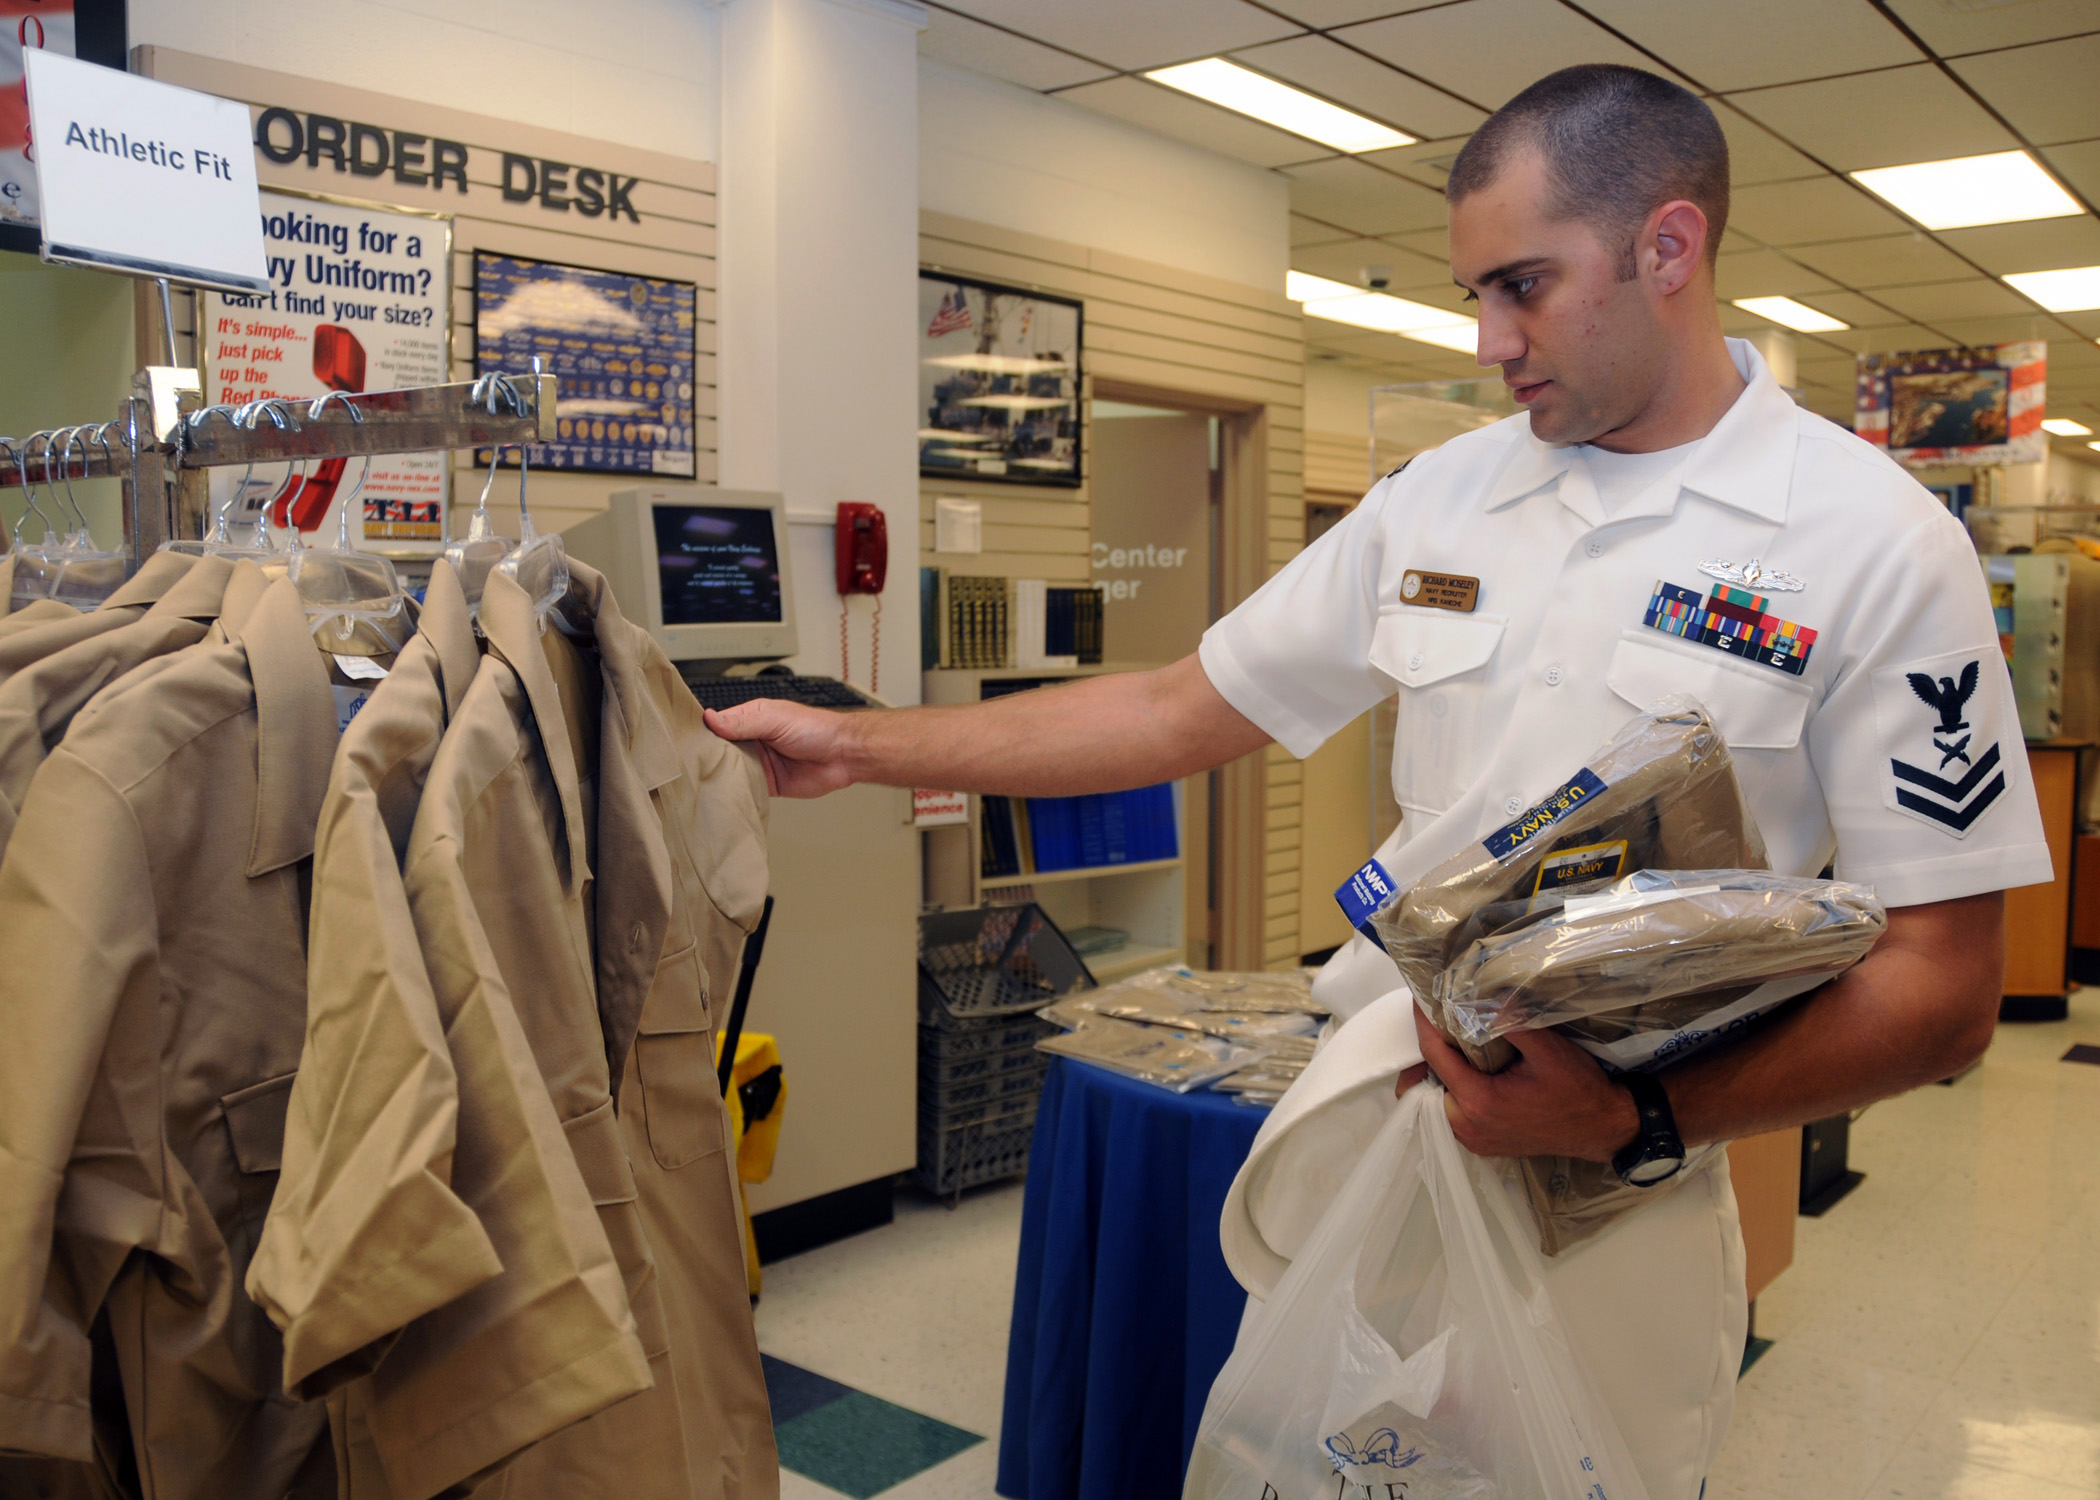 ... shops for the new service uniform at the Navy Exchange Uniform Shop